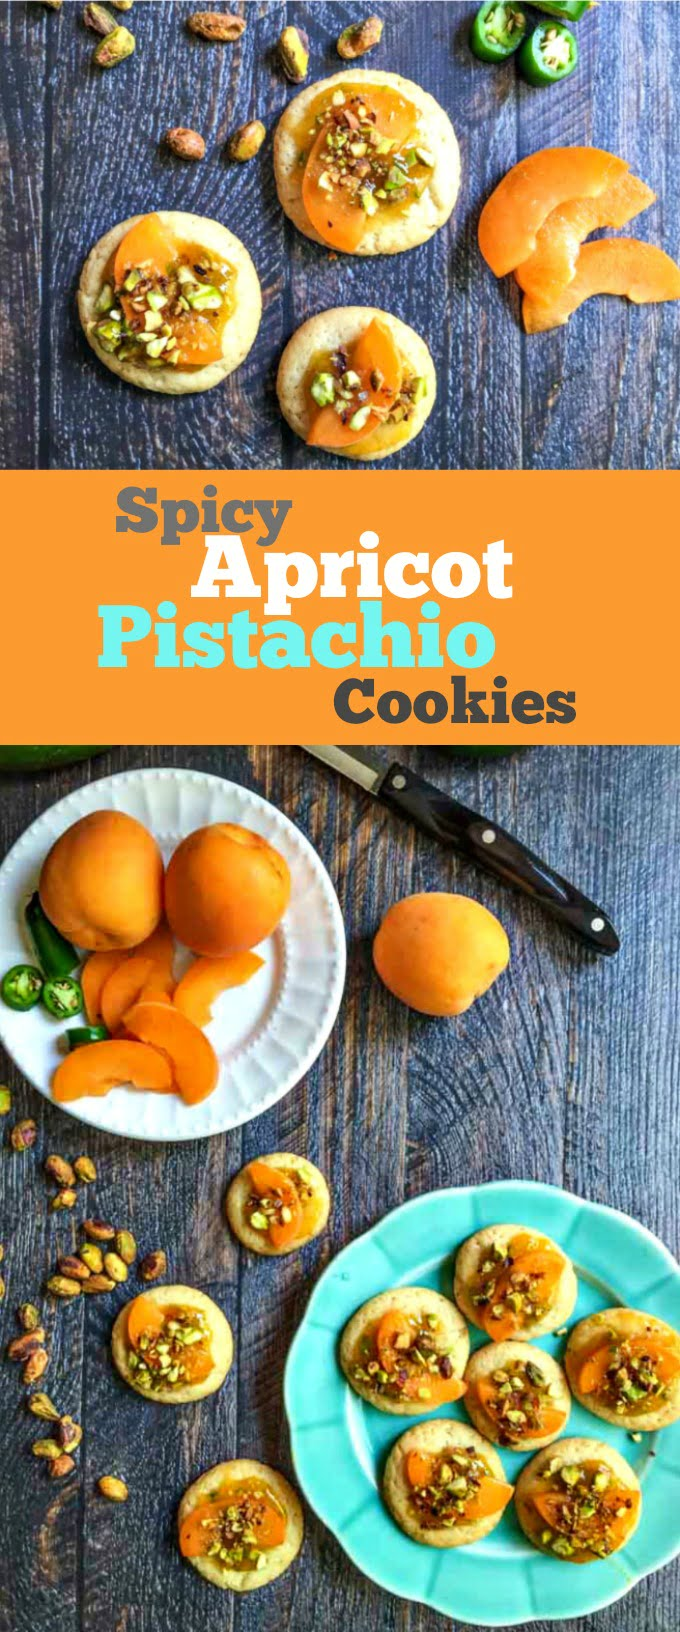 These spicy apricot pistachio cookies are easy to make and delightfully unique in flavor. These cookies have sweet apricots, spicy chiles and crunchy pistachios for a great taste.